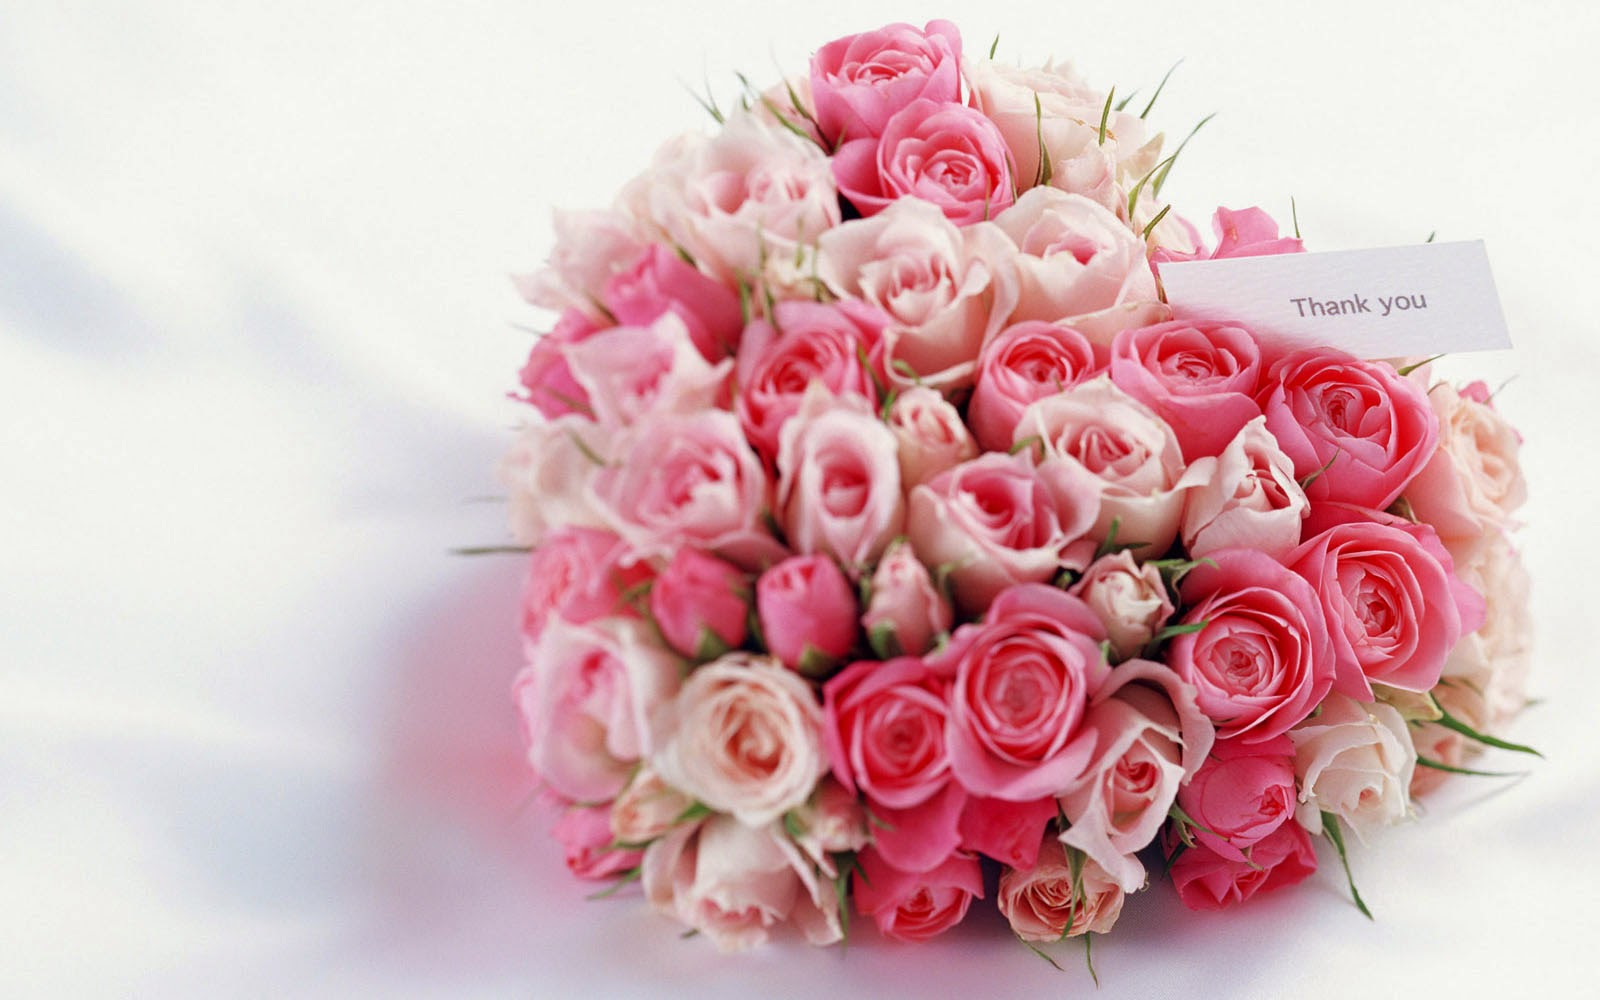 pure pink rose bouquet - photo #5